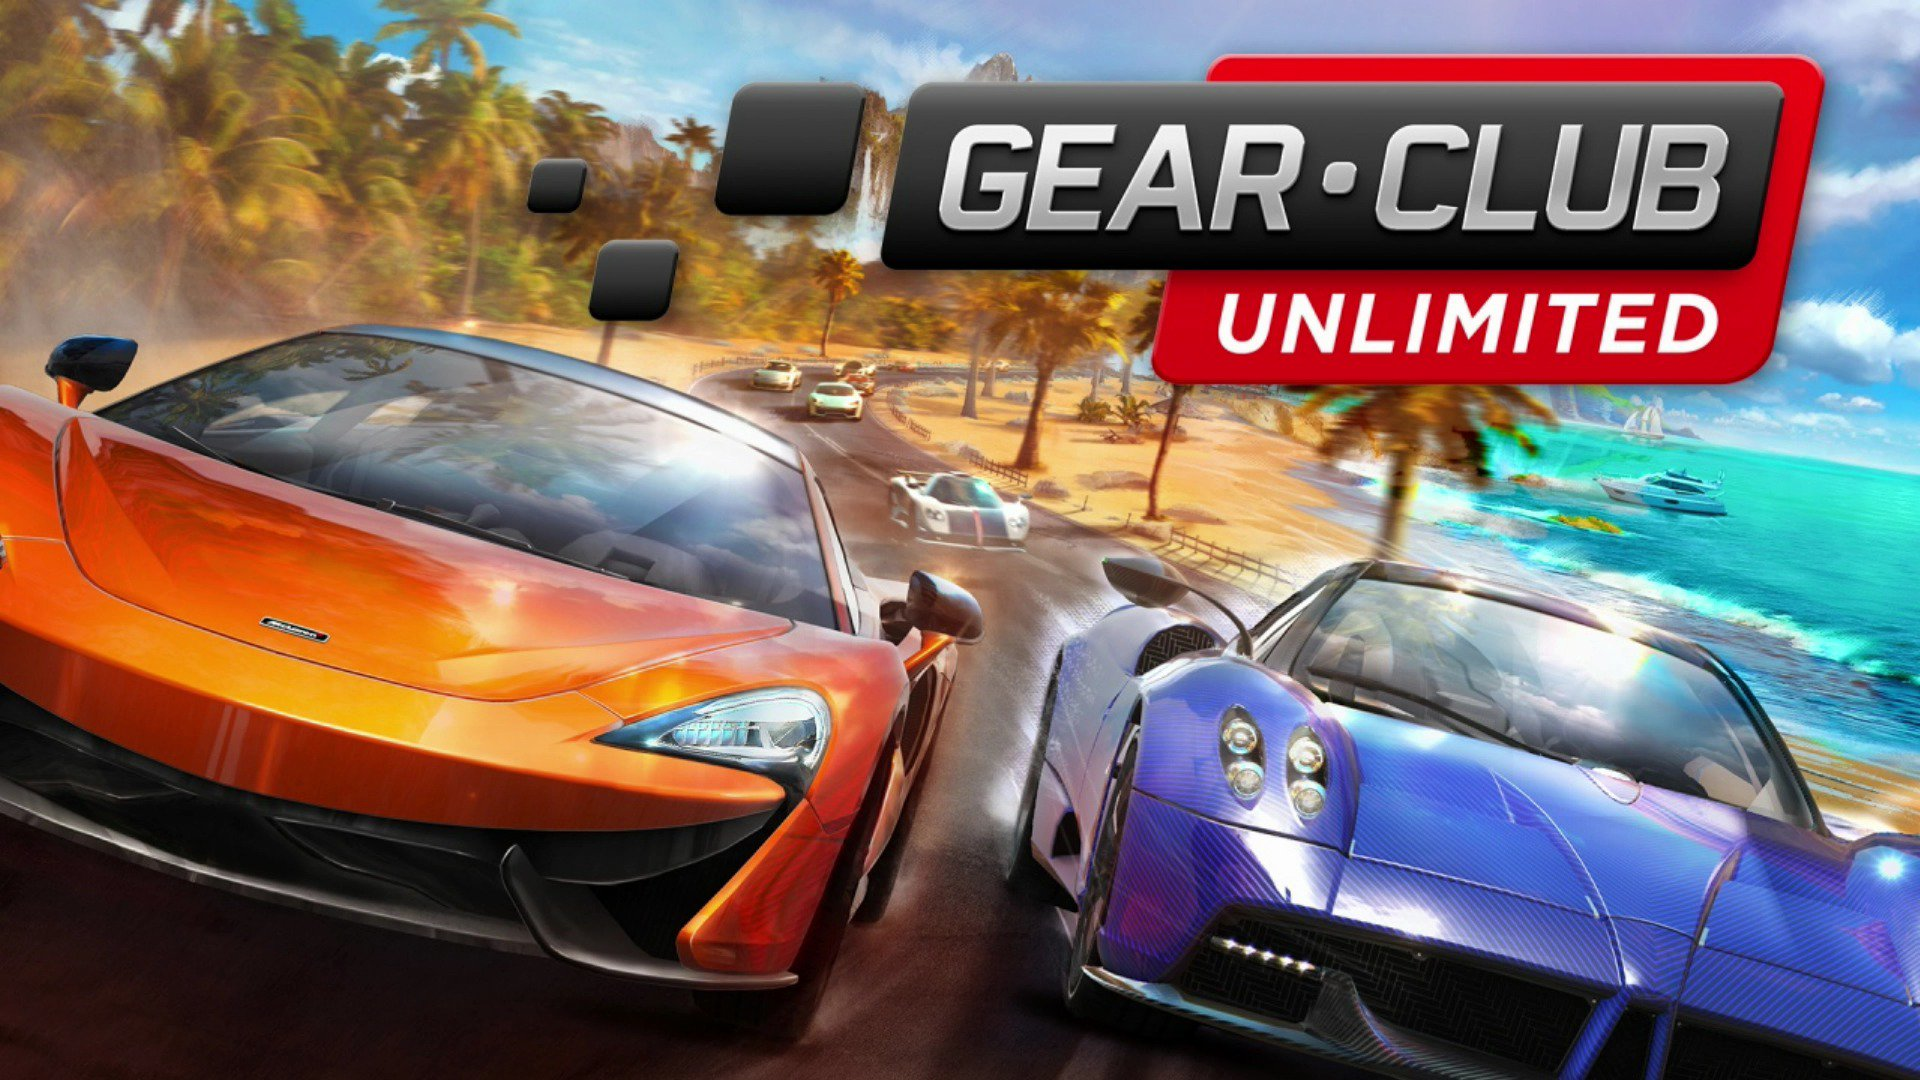 gear-club-unlimited-review.jpg